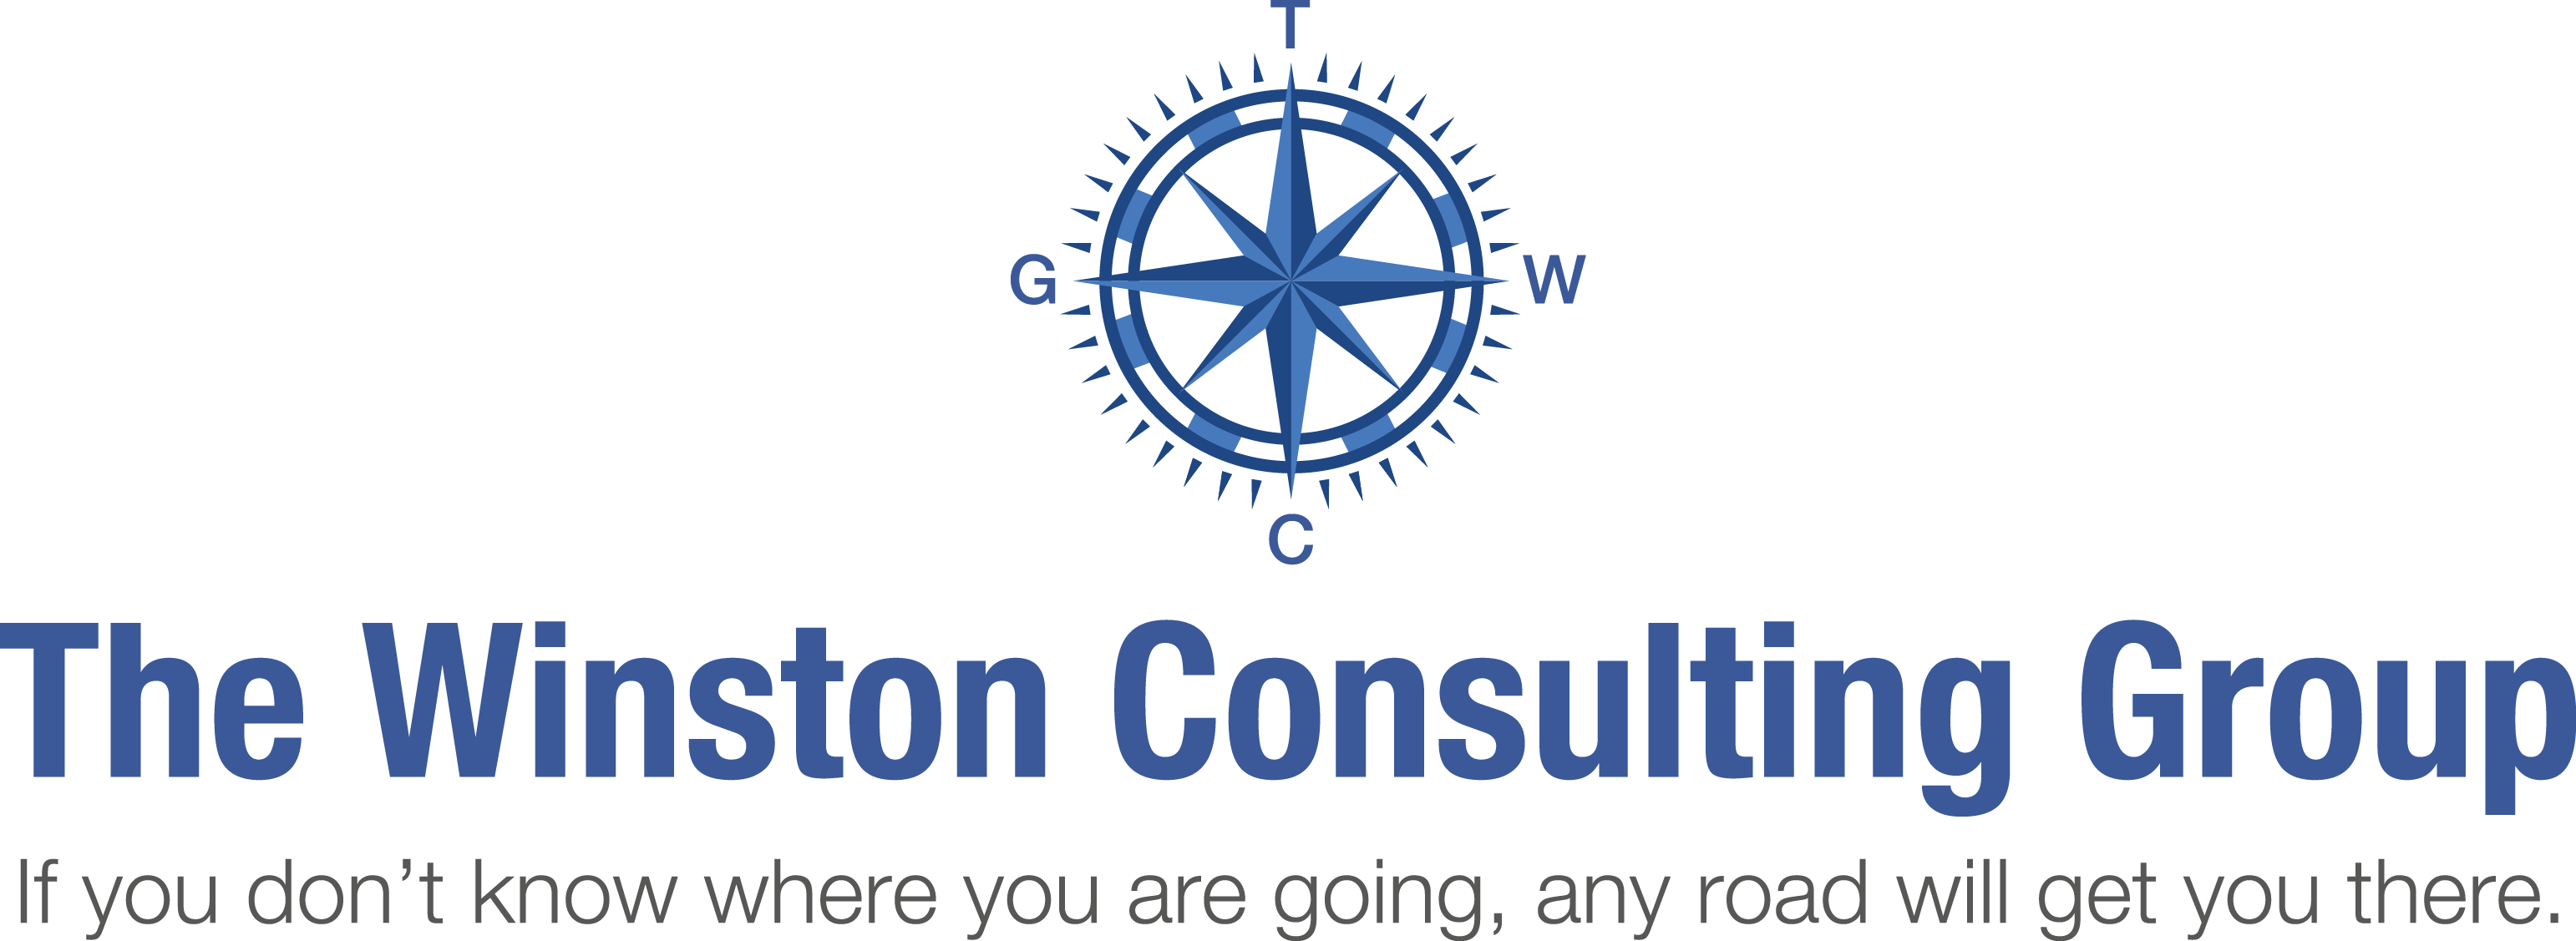 The Winston Consulting Group